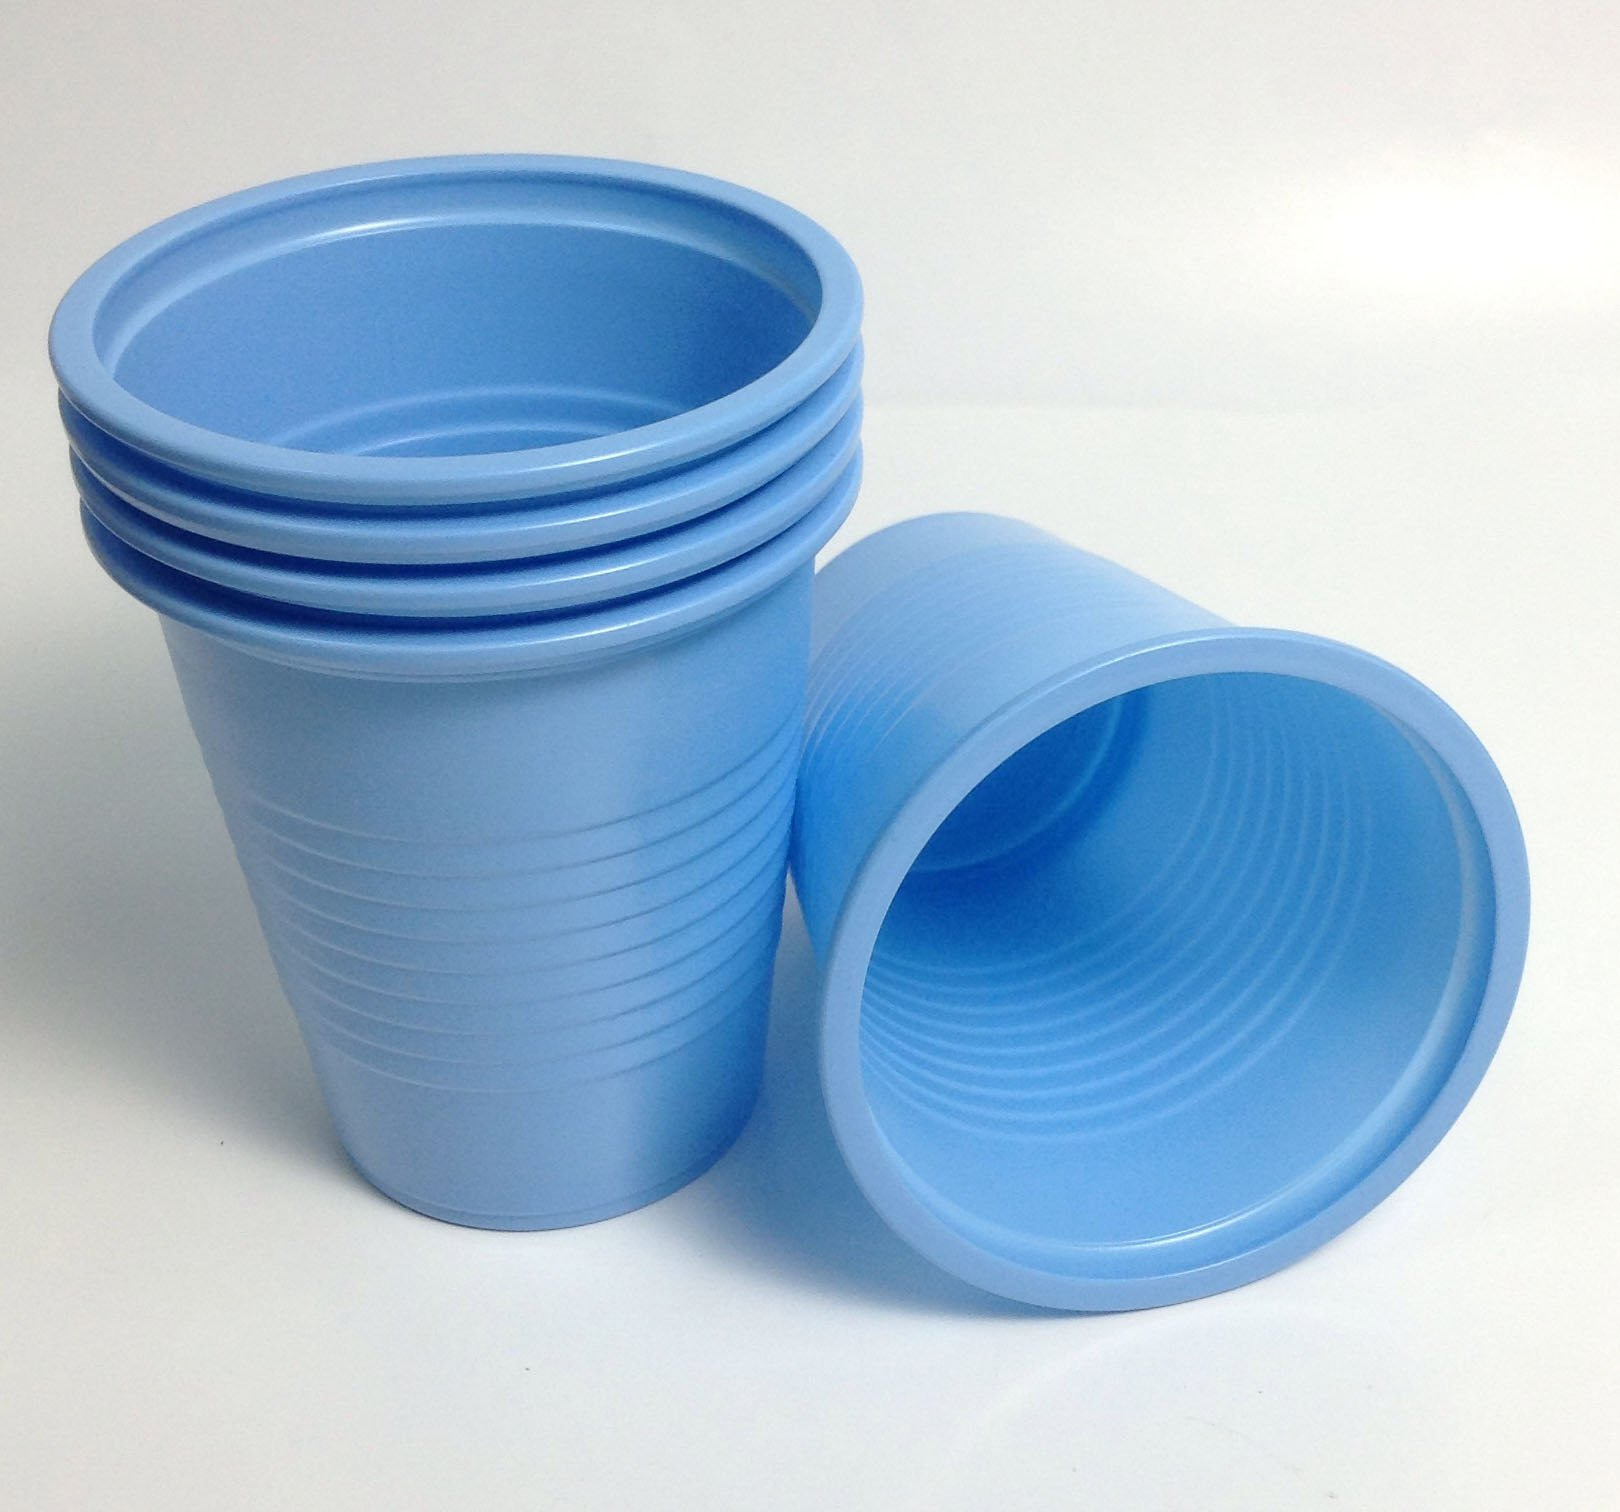 Dental Drinking Cups 5 oz, 1000 Cups, 50 Pcs Per Bag Dental Deluxe Brand